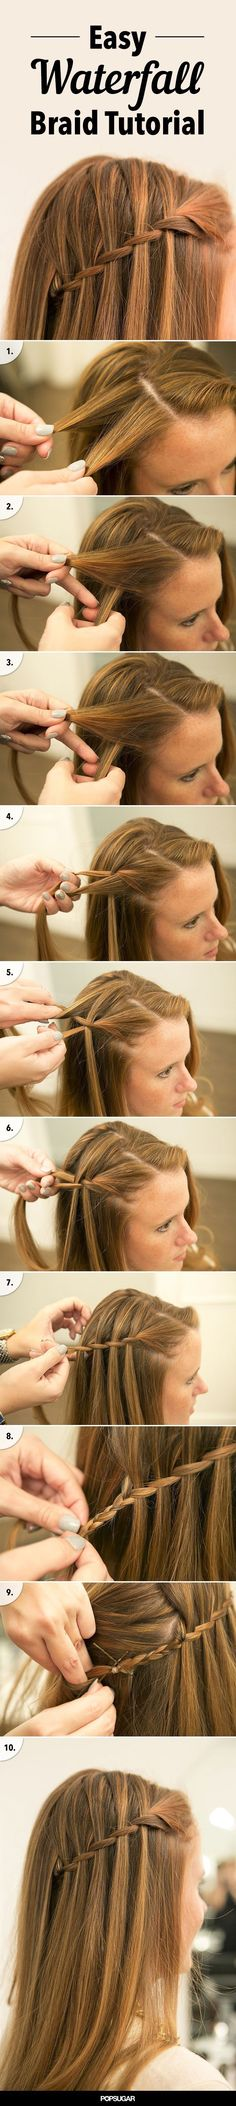 Waterfall Braid - I need to try this one more time!